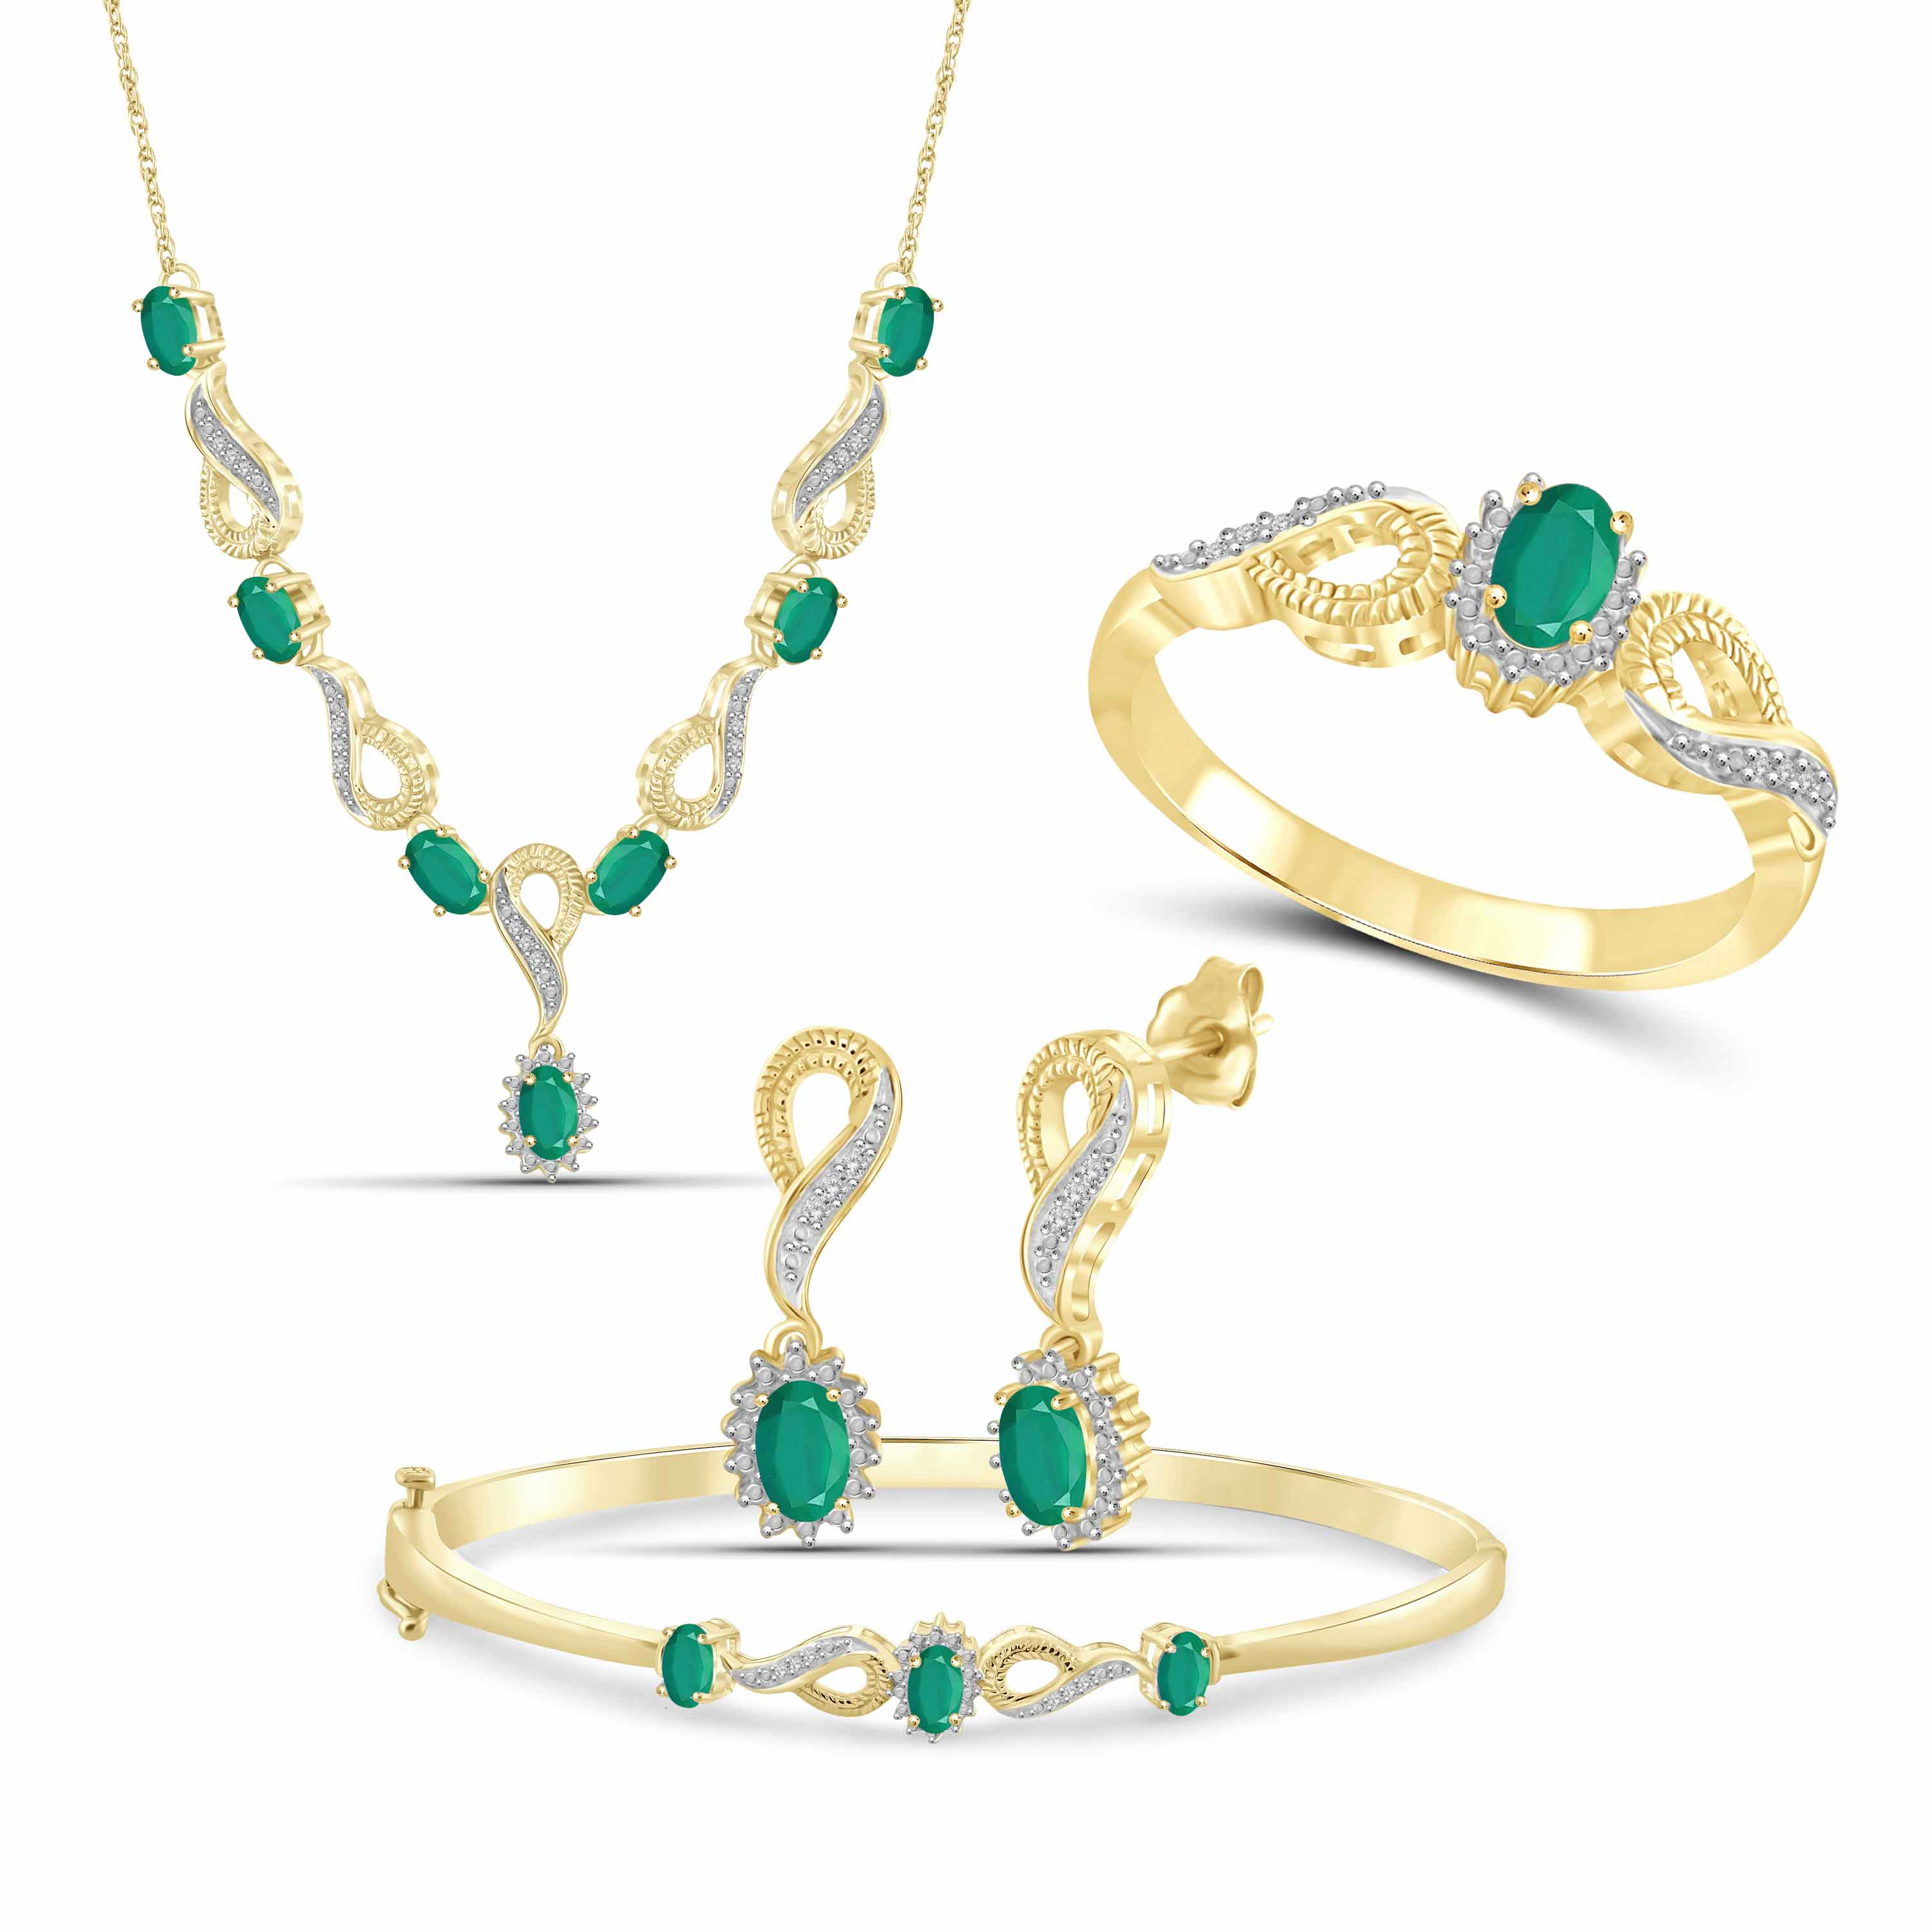 JewelersClub 3.00 Carat T.G.W. Emerald And White Diamond Accent 14K Gold over Silver 4-Piece Jewelry set